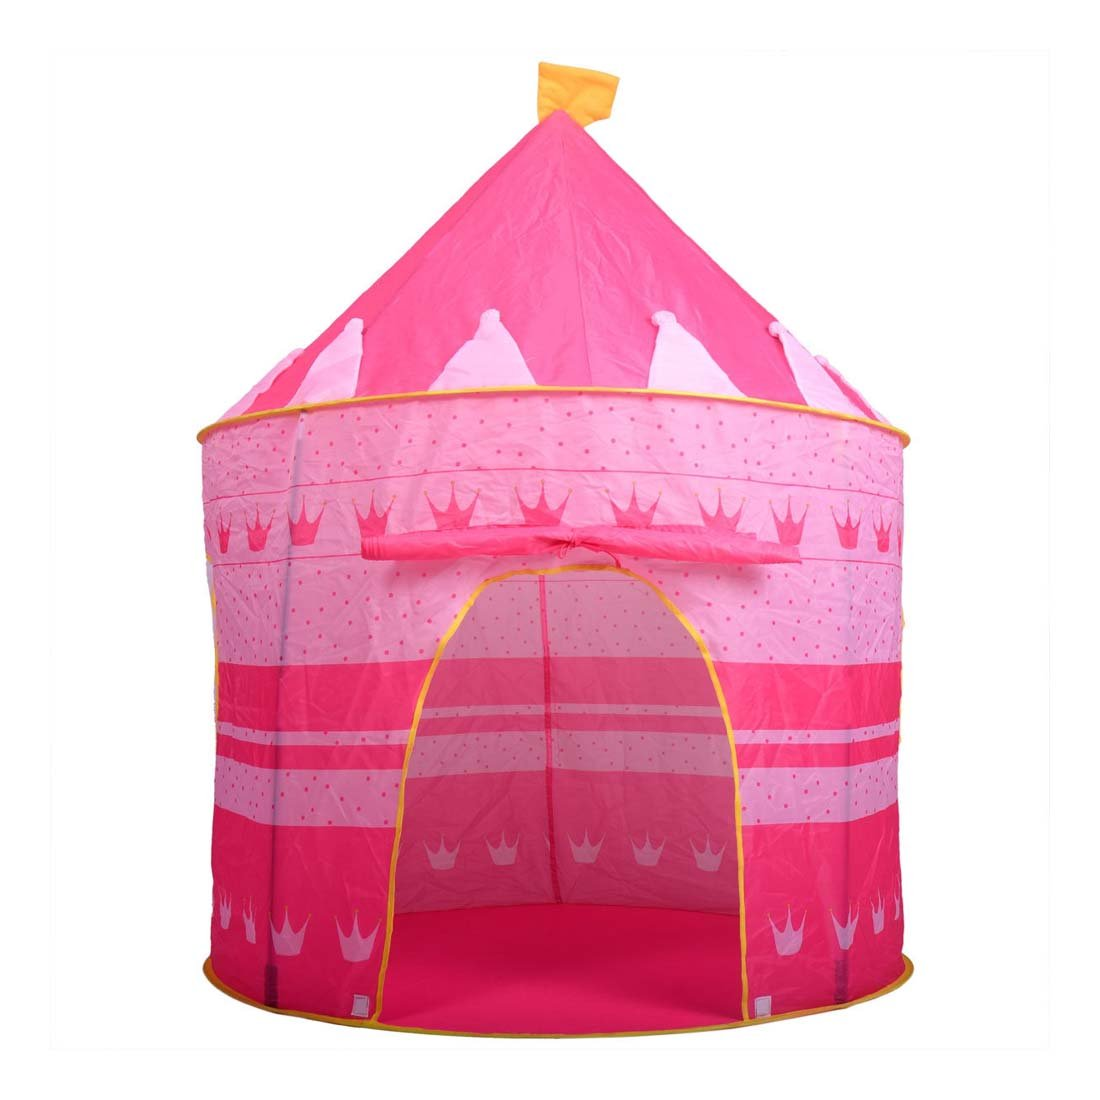 Portable Pink Folding Play Tent Kids Girl Princess Castle Fairy House 40.140.380cm (LWH) B071FTQPR3